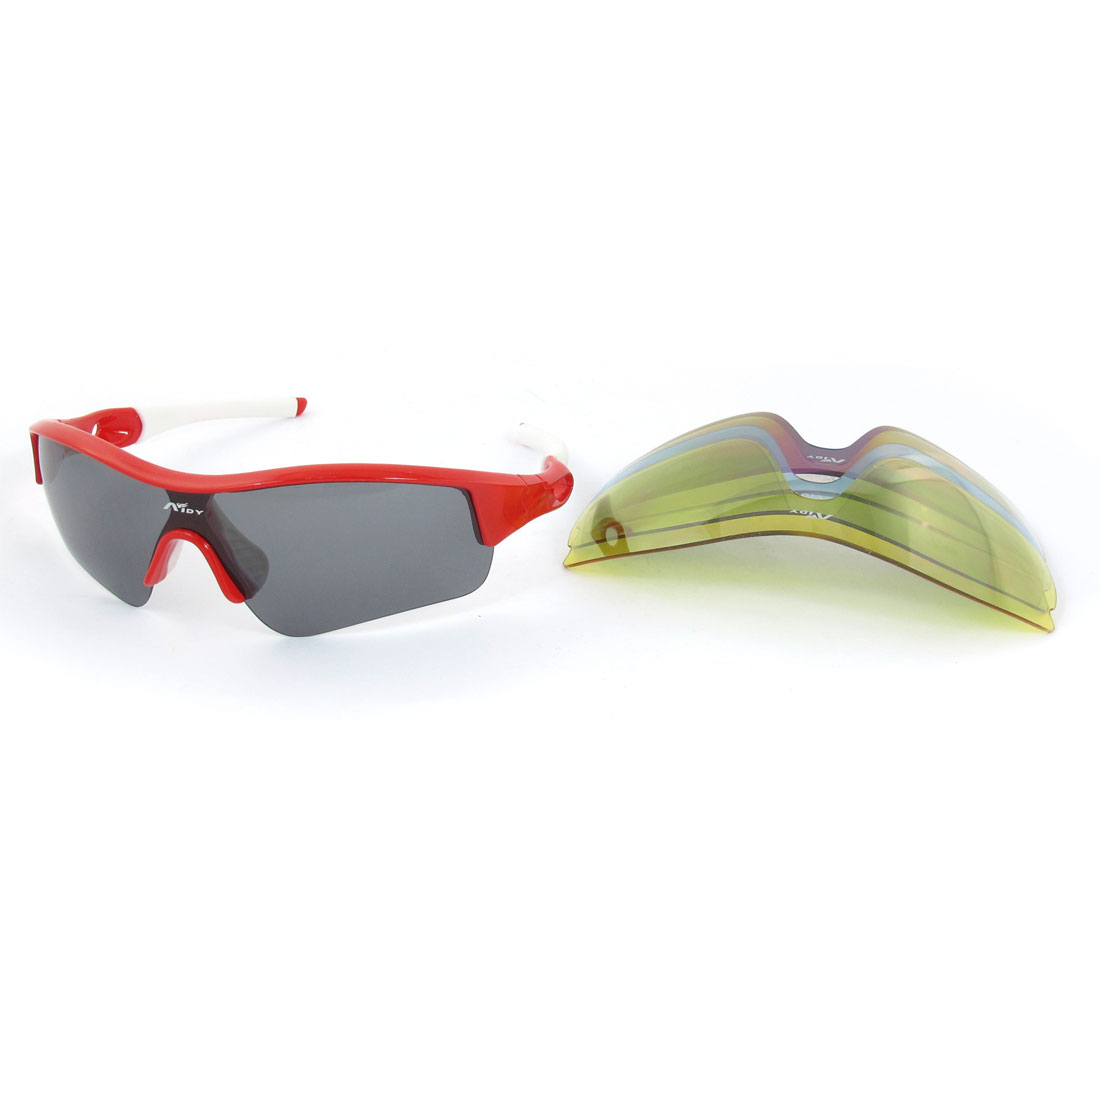 Rubber Coated Arm Half Rim Polarized Sunglasses Glasses White Red + Neck Strap